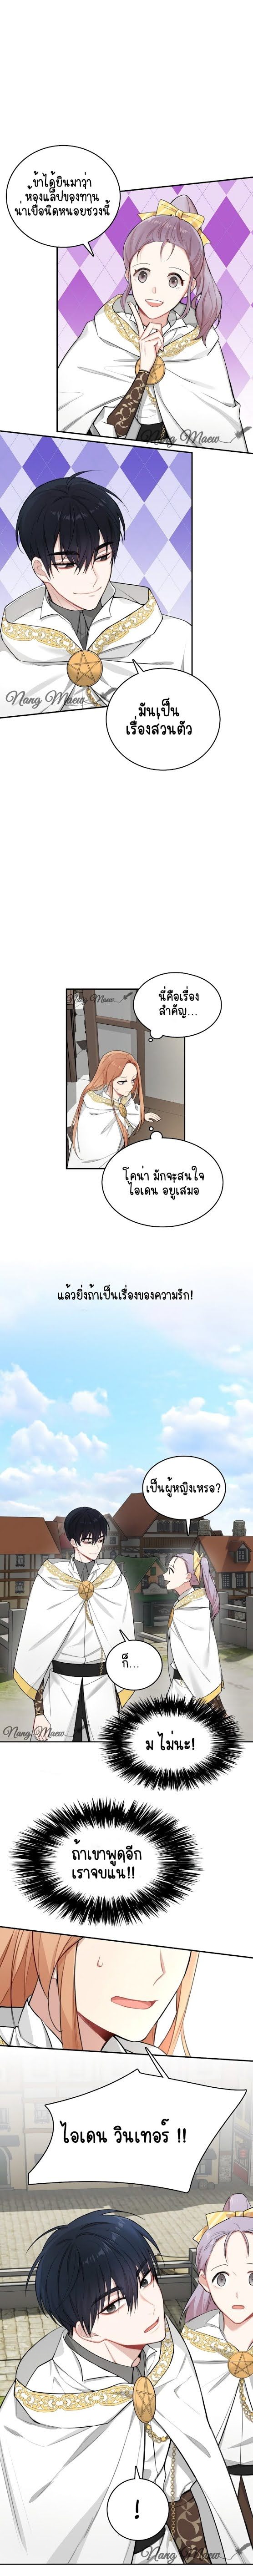 The Newlywed Life of a Witch and a Dragon - หน้า 14